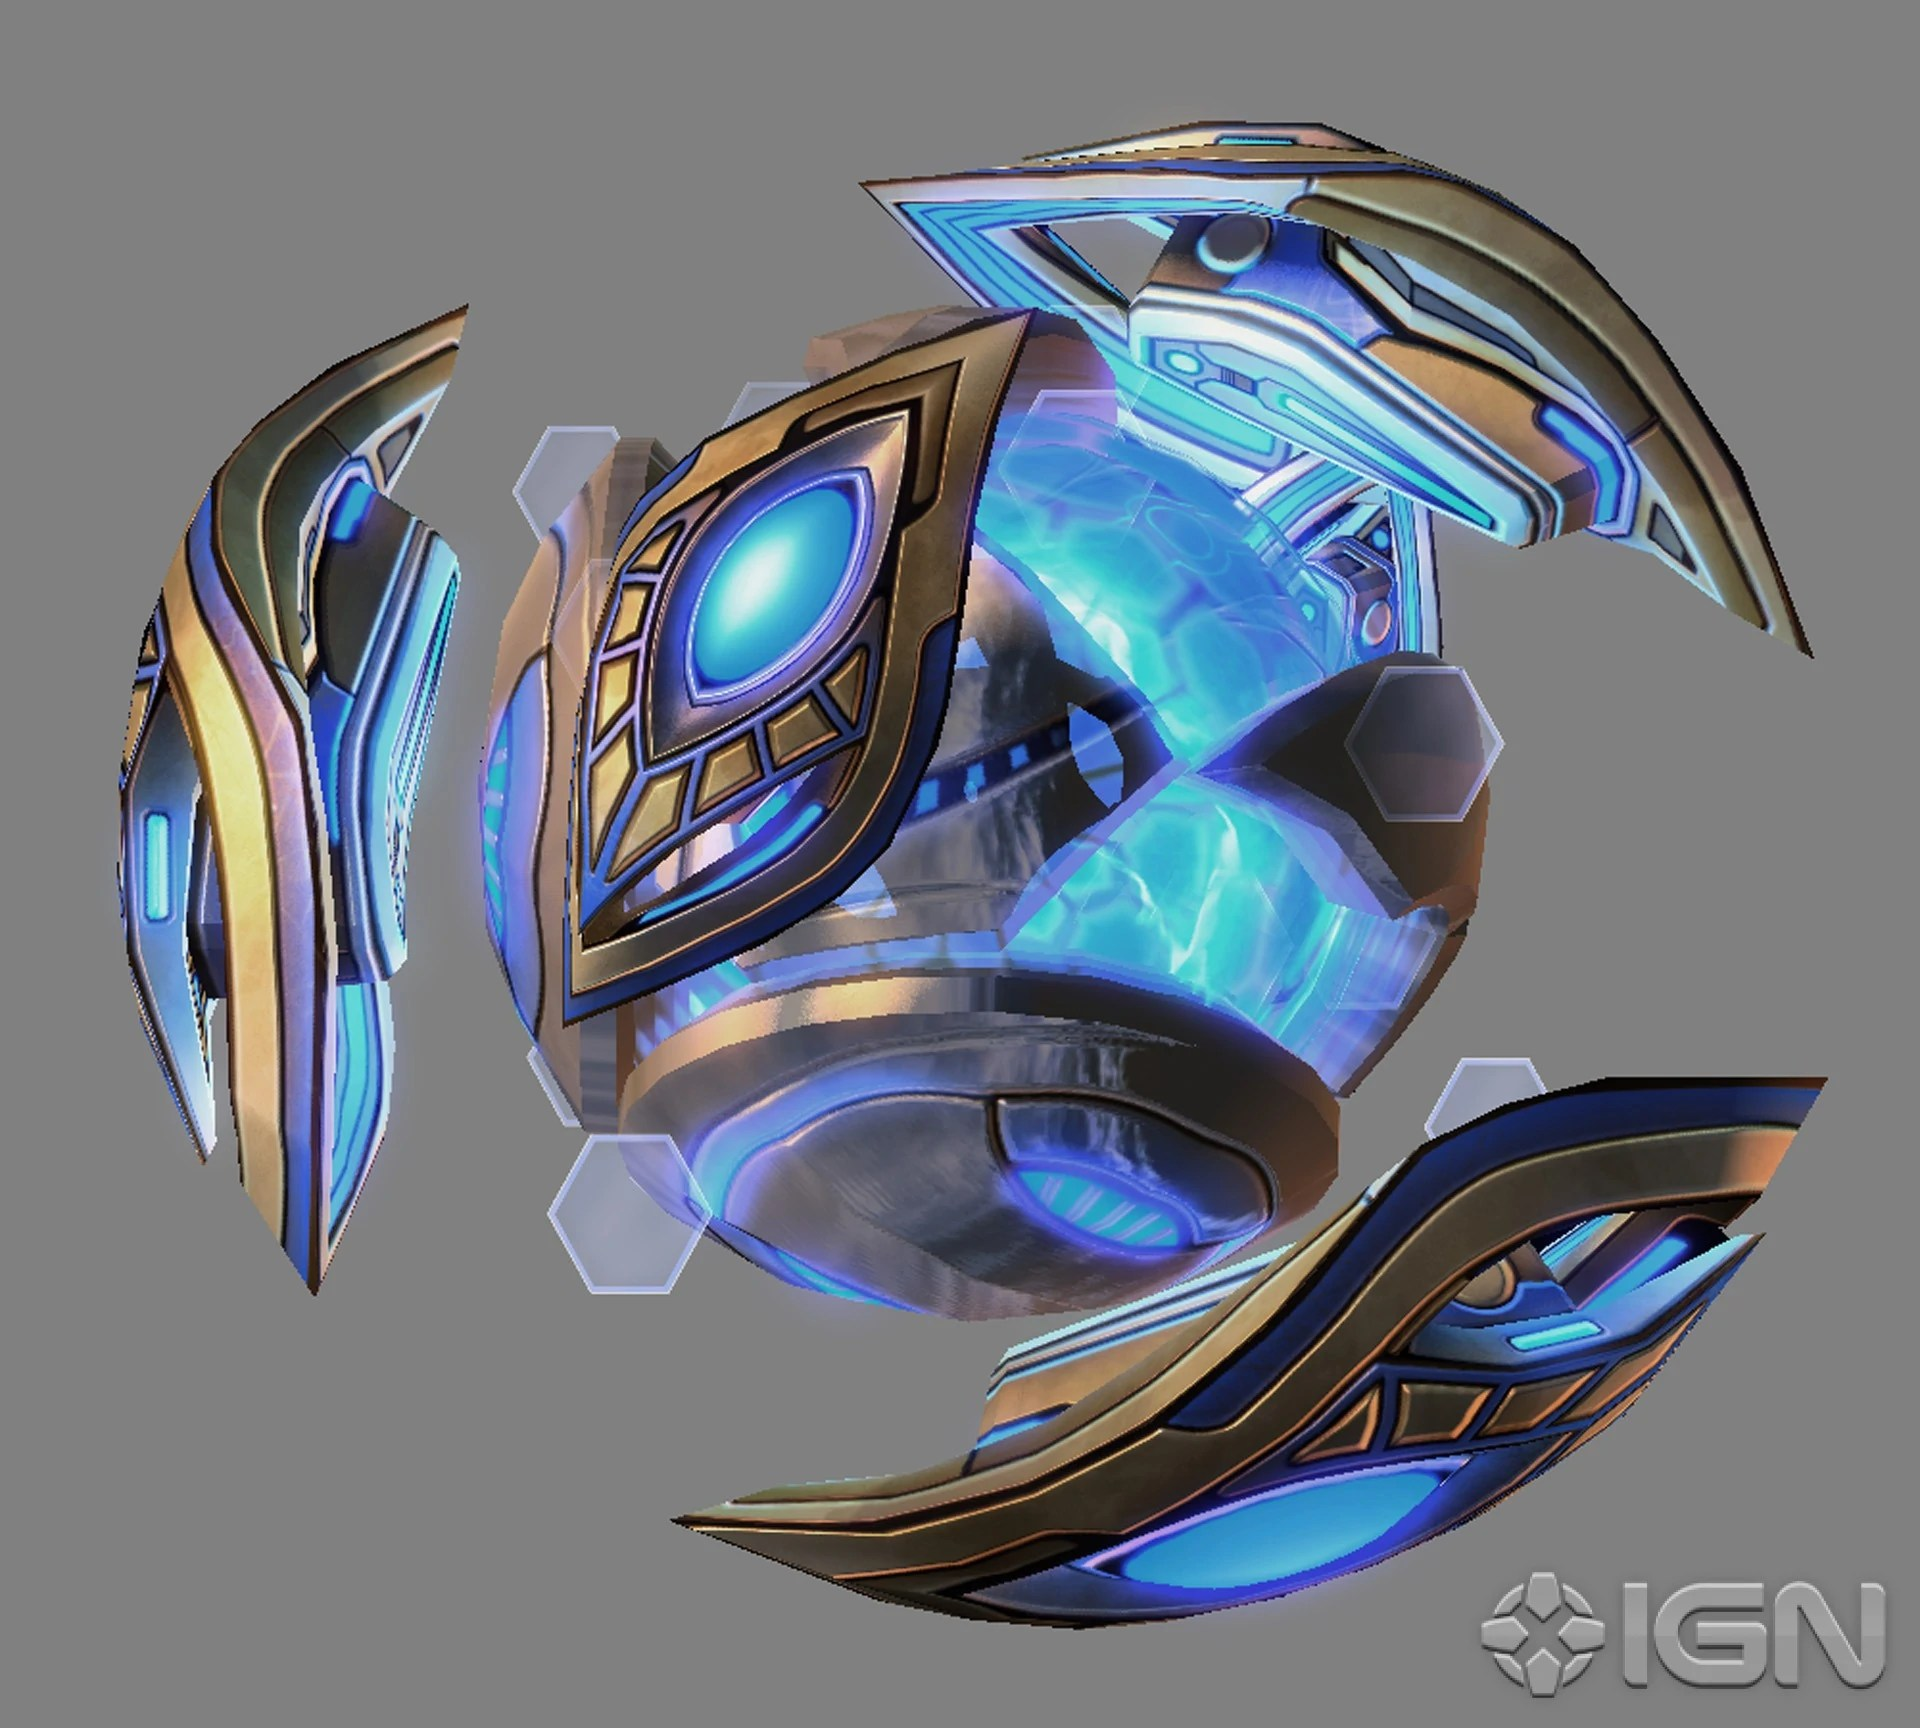 The new Protoss replicant unit in Starcraft 2: Heart of the Swarm